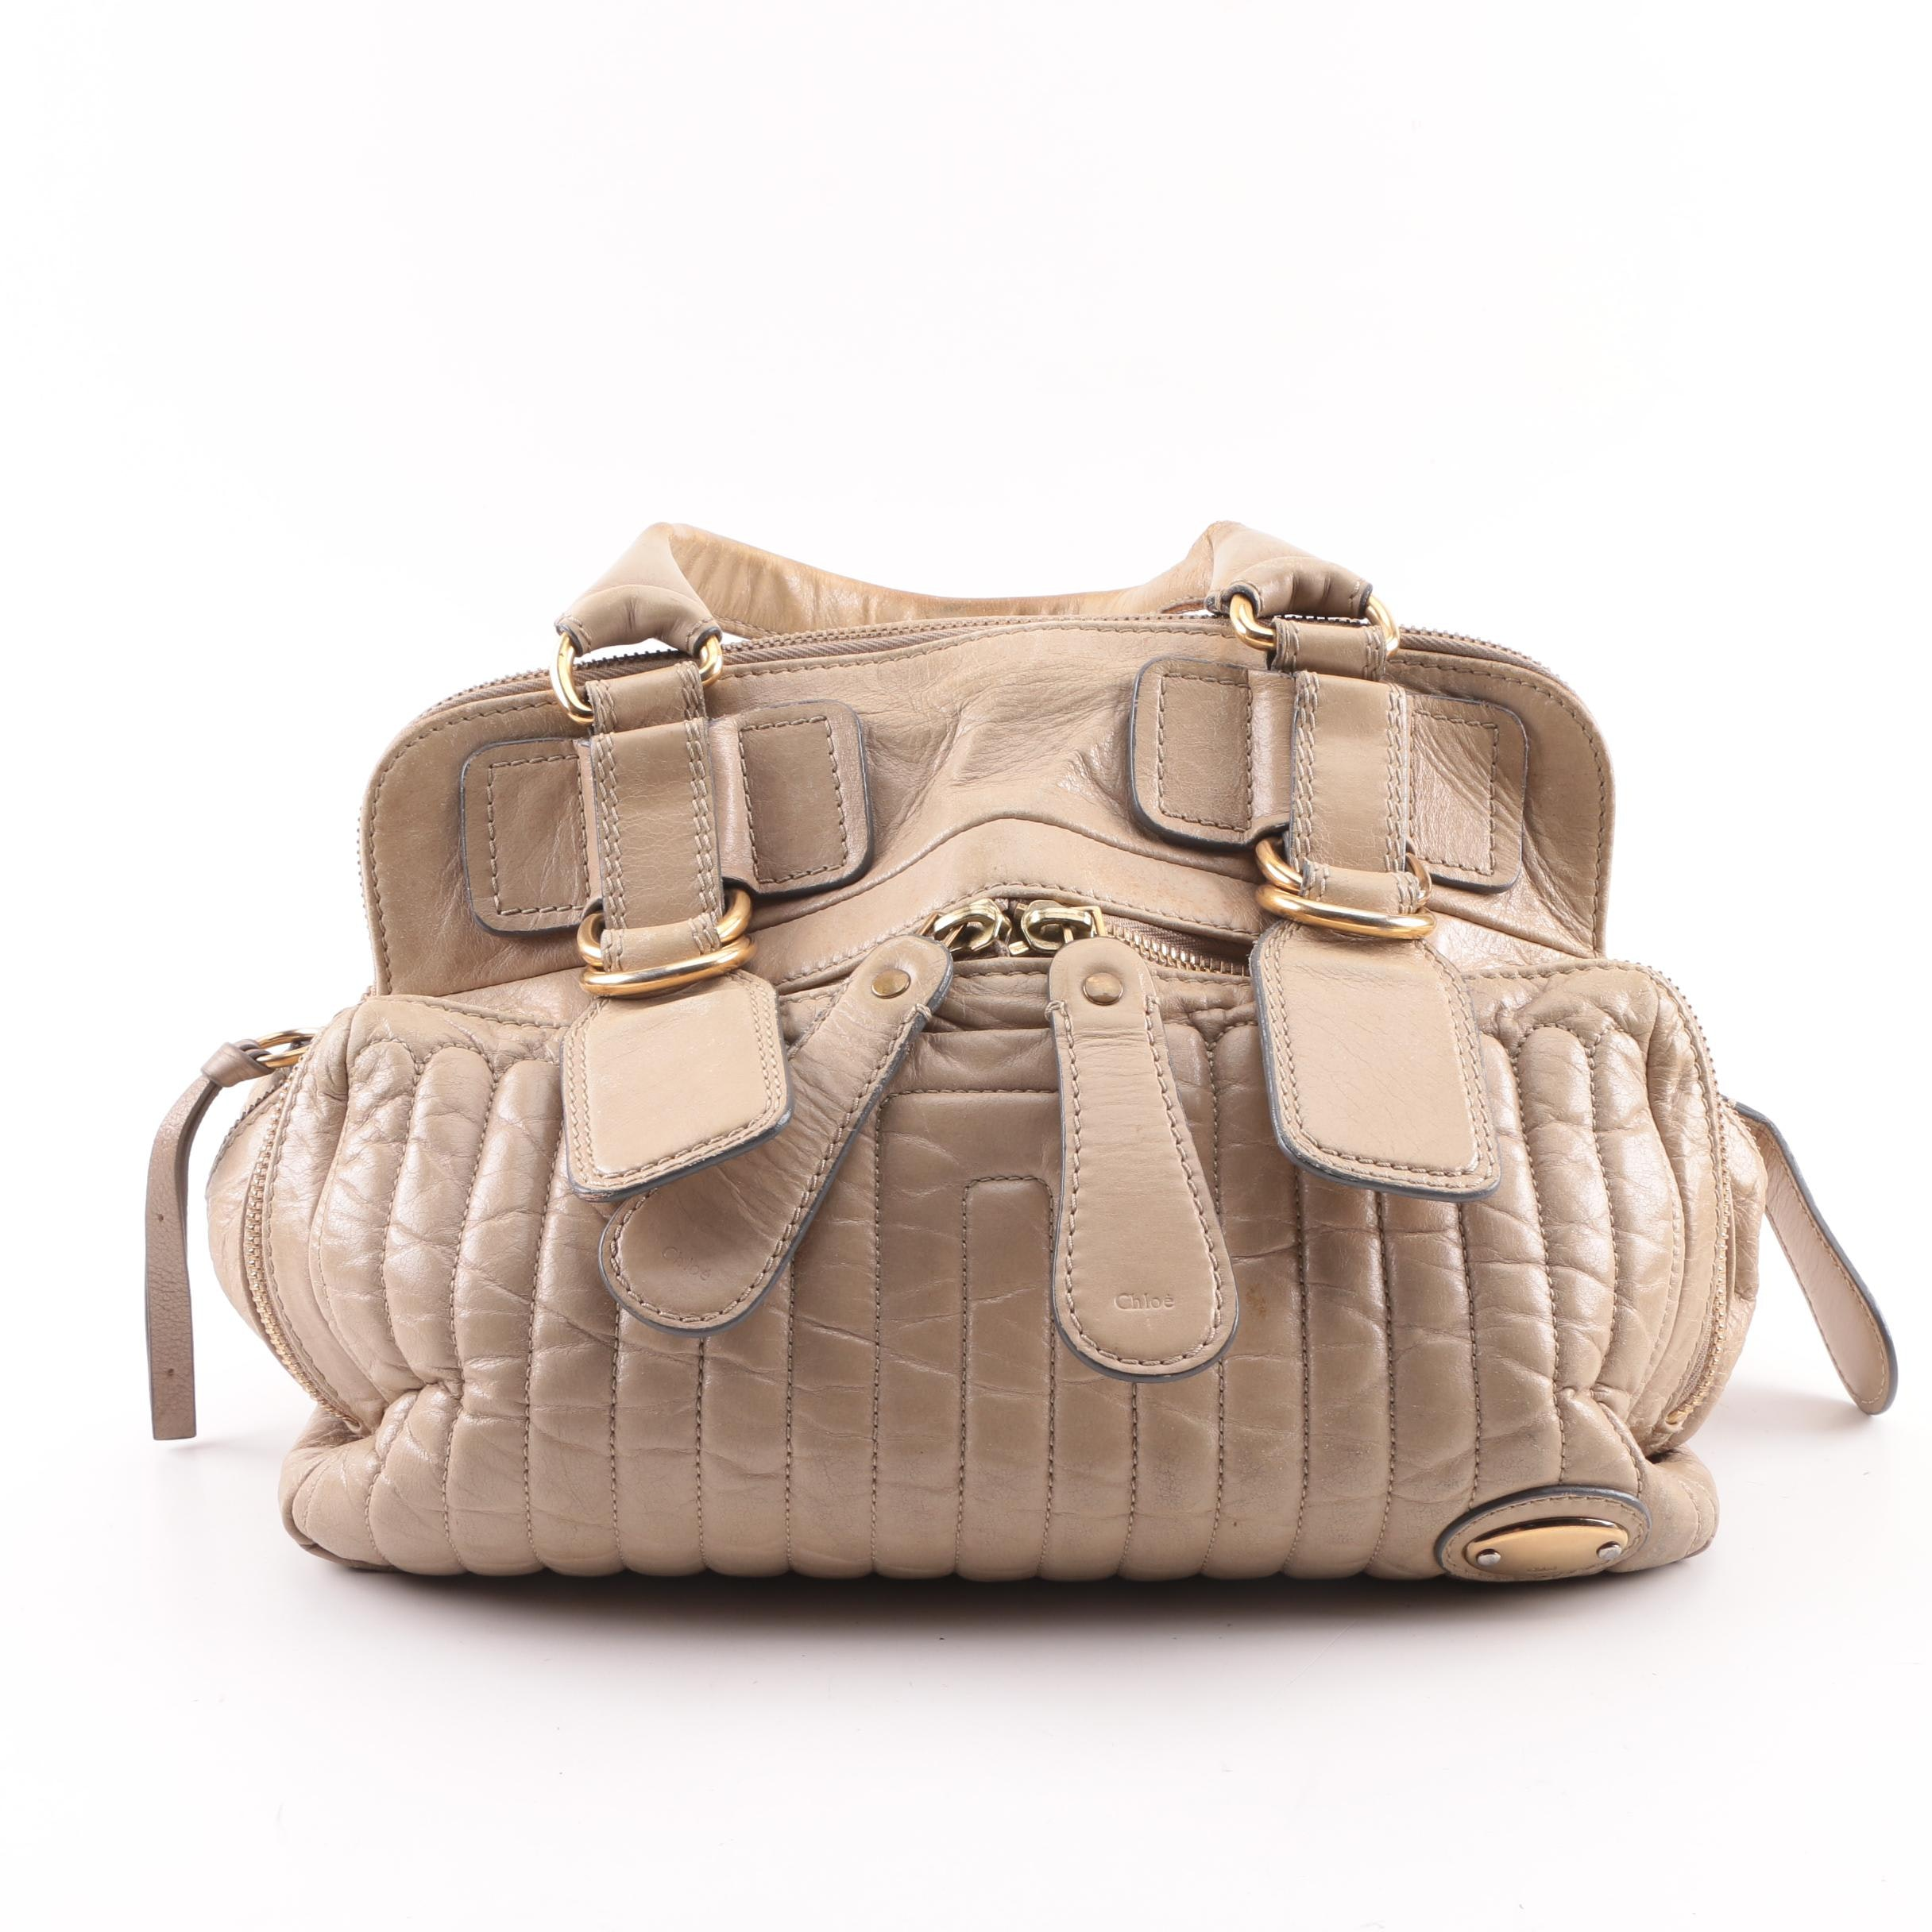 Chloé Bay Quilted Beige Leather Satchel